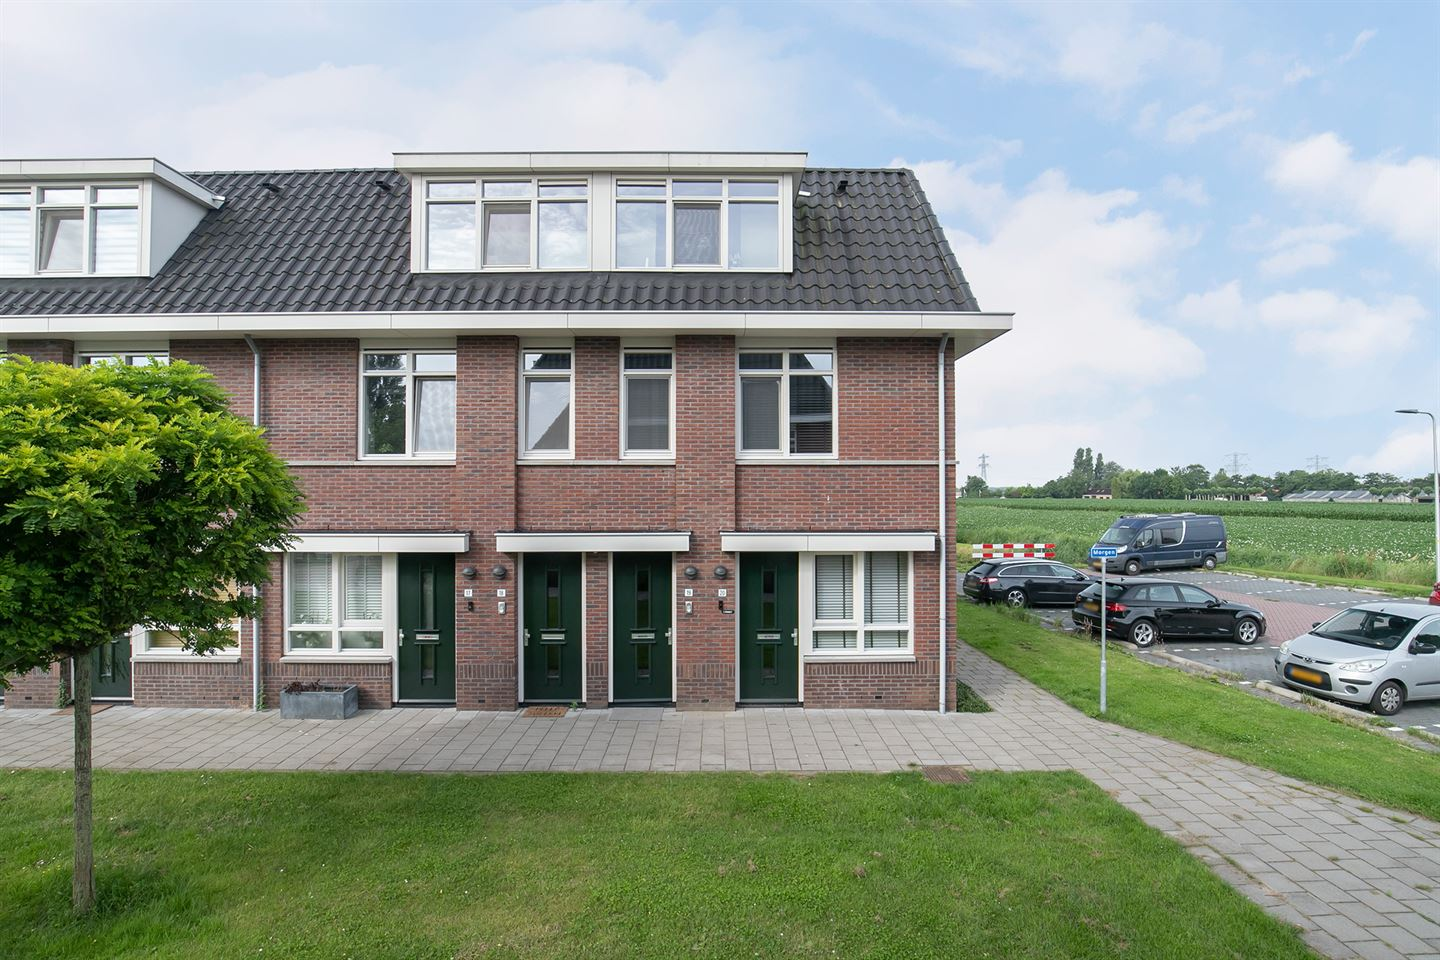 View photo 1 of Morgen 19